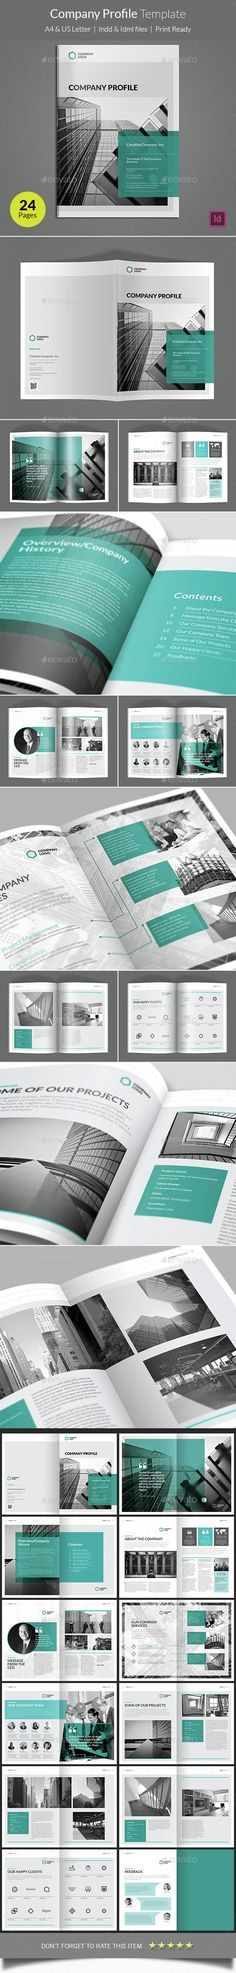 Best 25+ Company profile ideas on Pinterest Company profile - profile company template